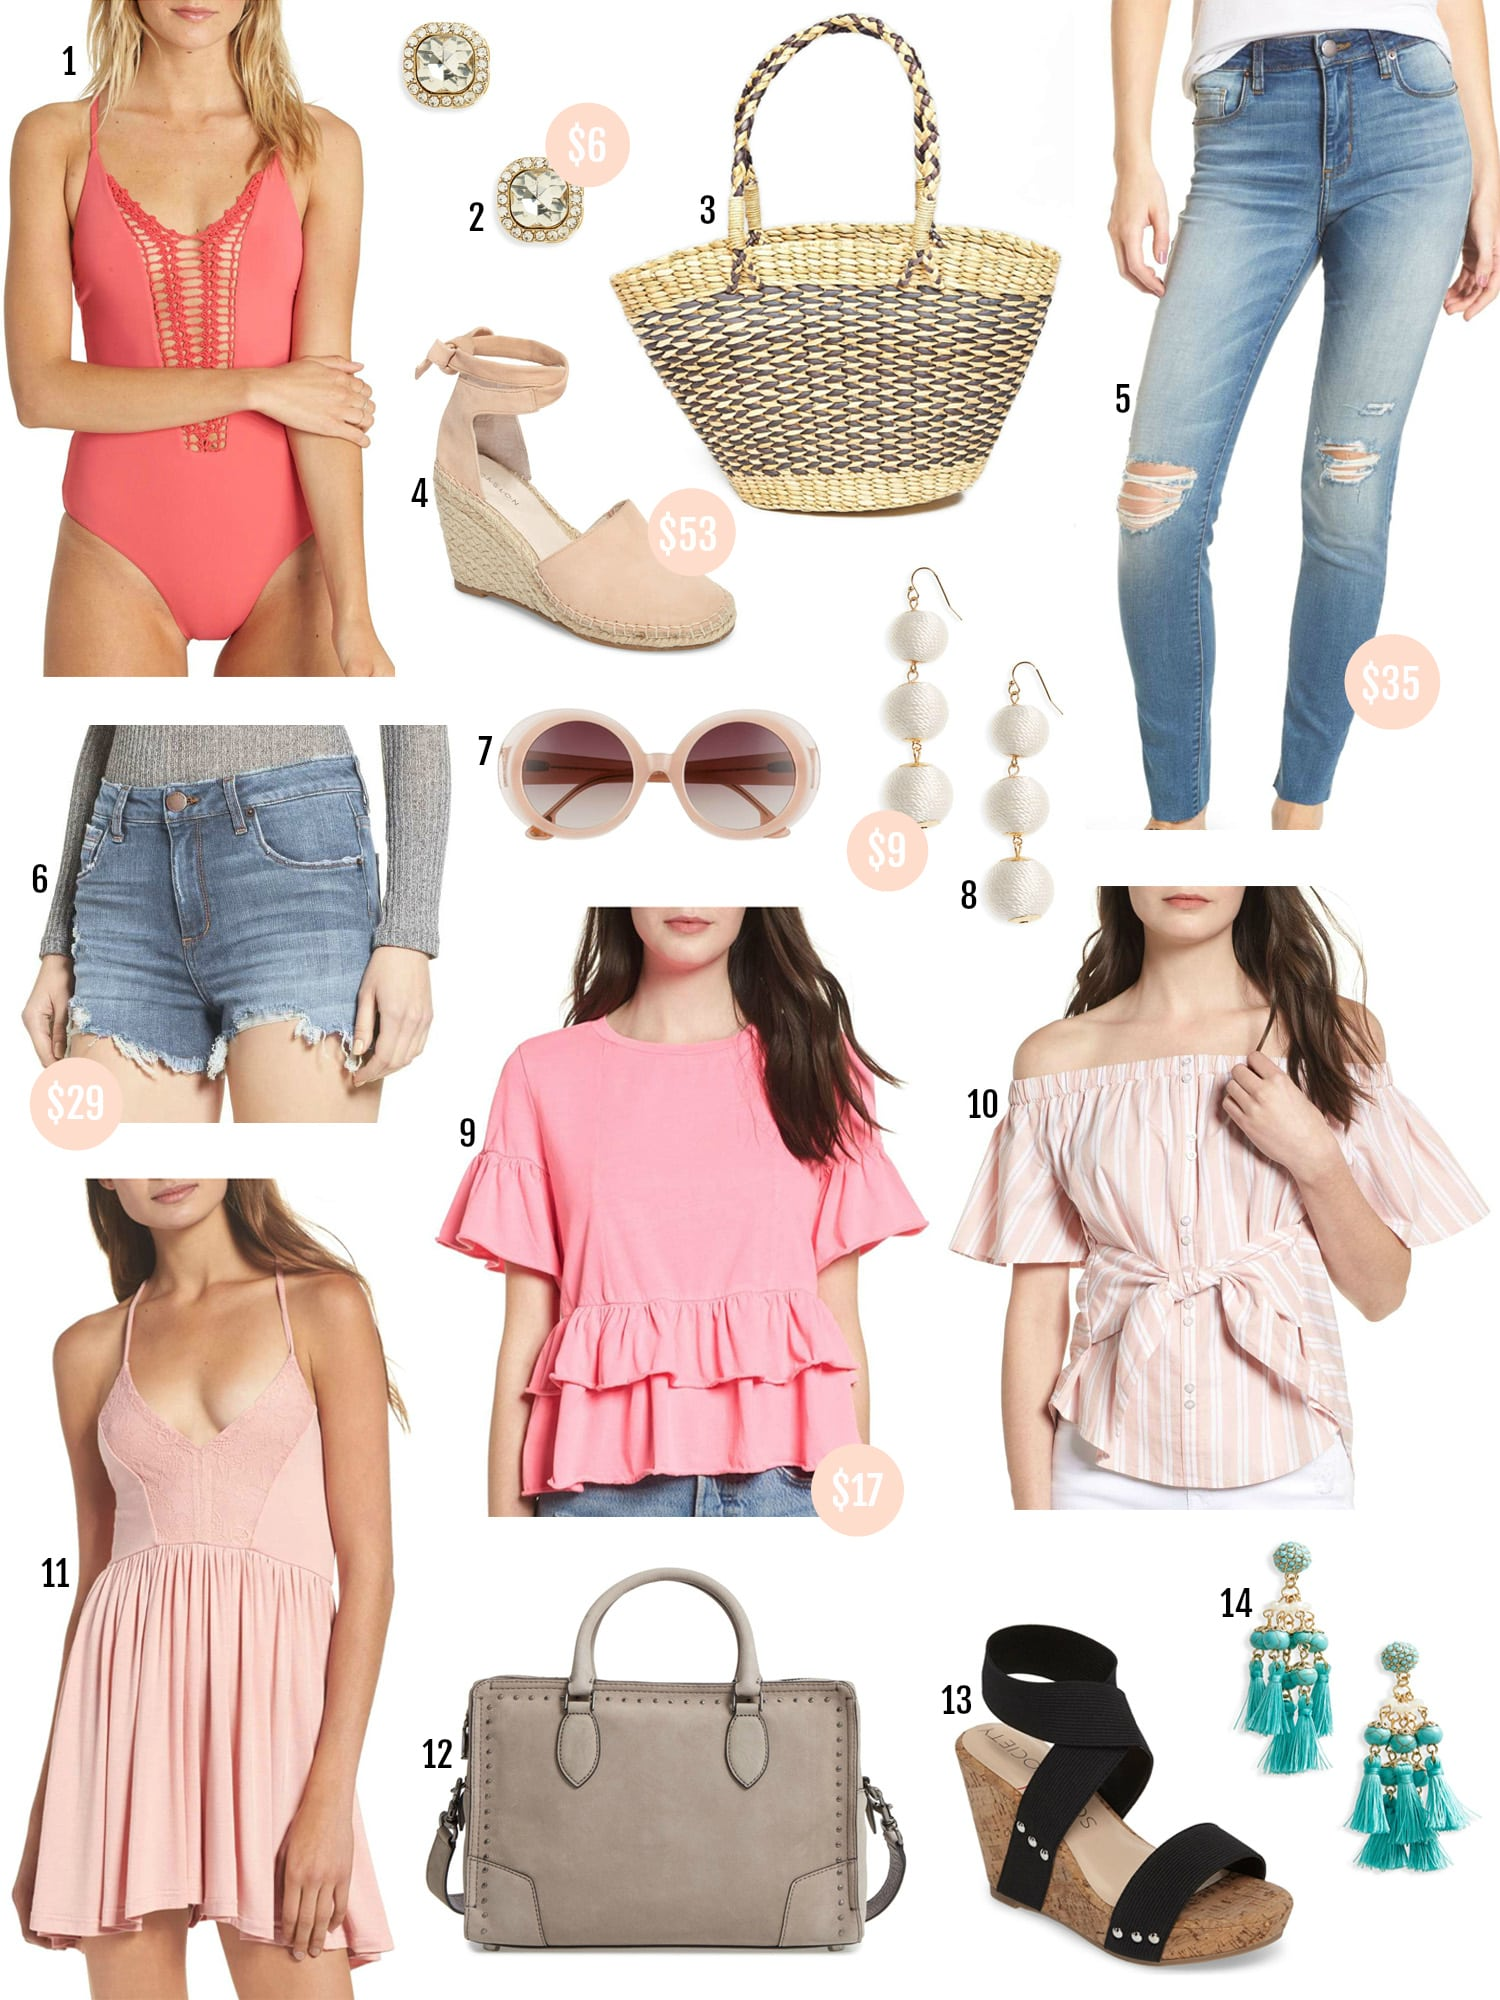 Spring fashion | beauty blogger Mash Elle | Spring outfits | affordable fashion | woven handbag | wedge heels